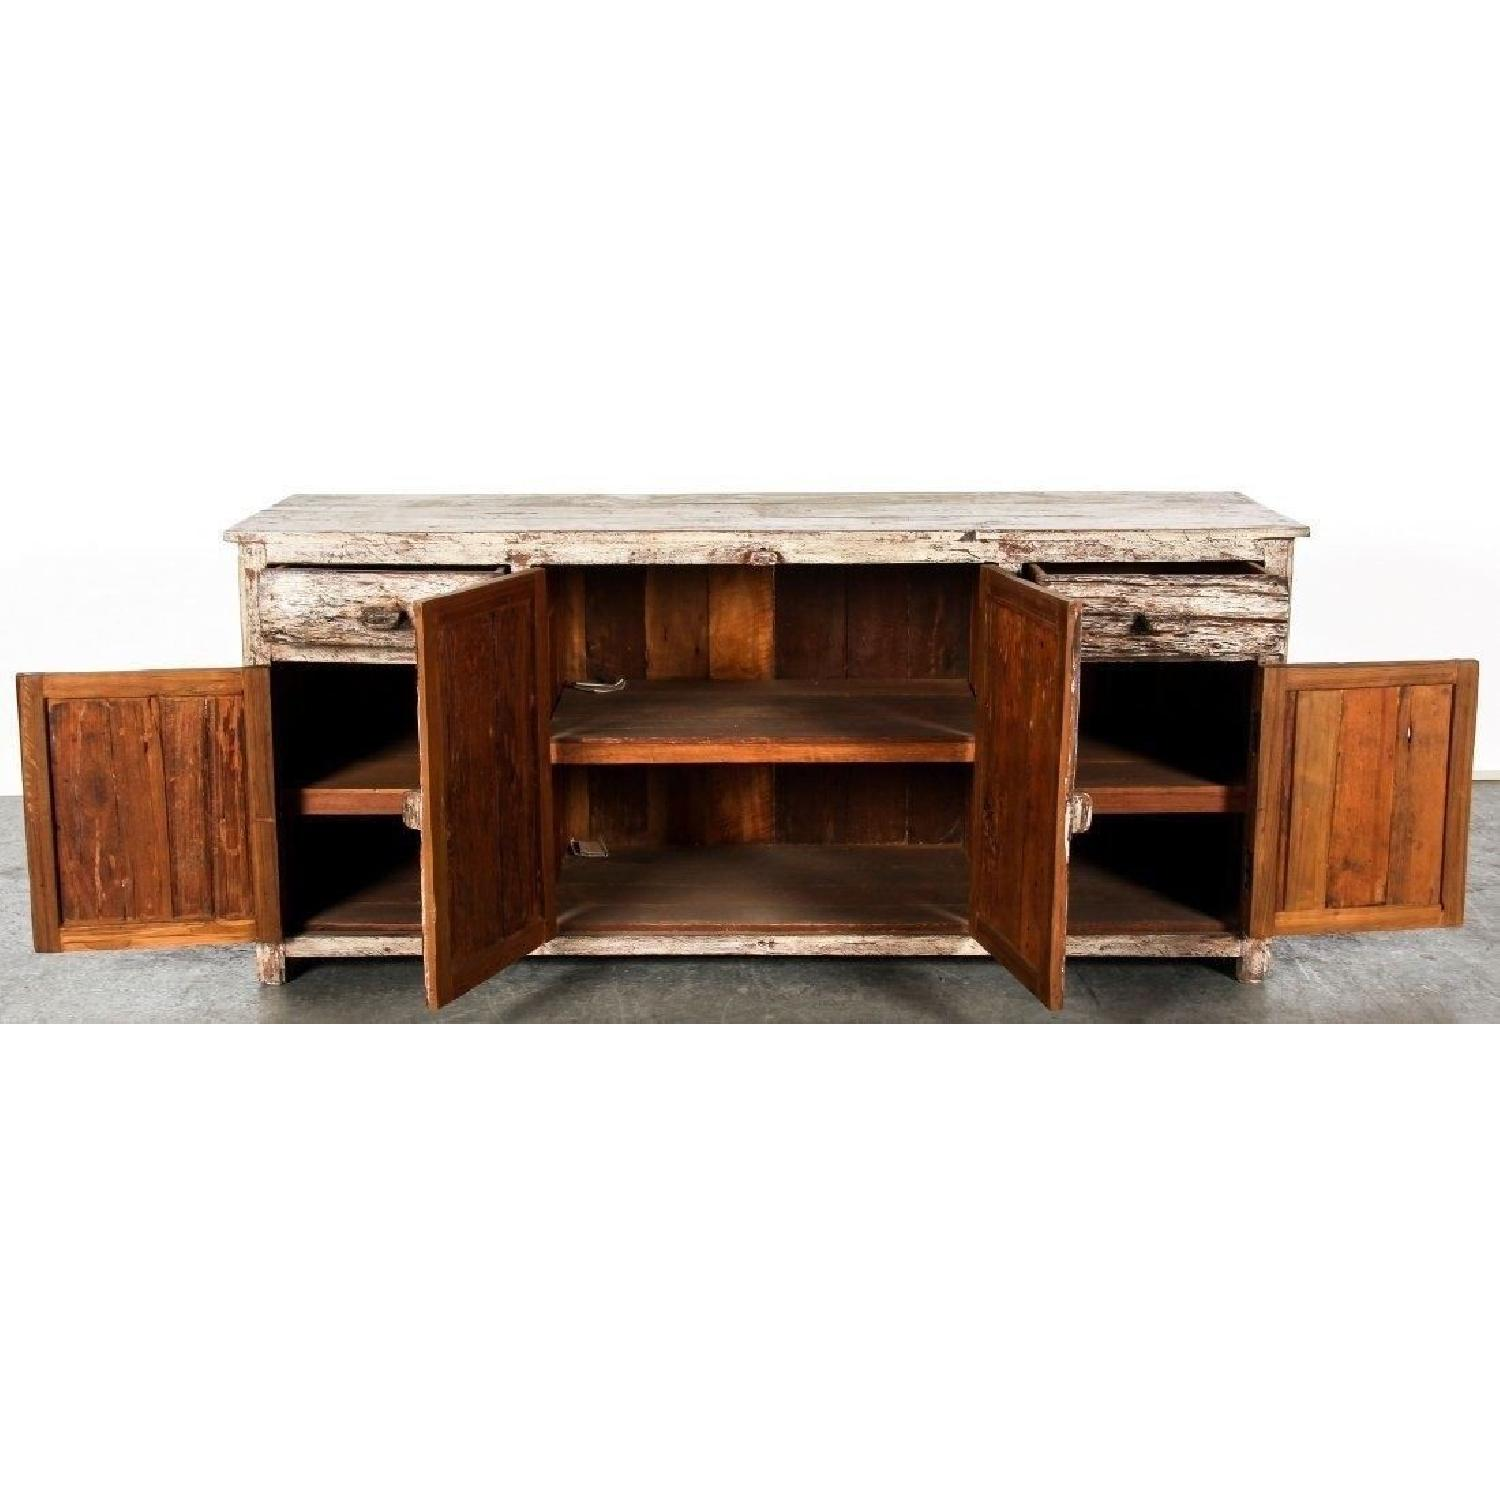 Distressed Rustic Country Wood Cabinet/Sideboard